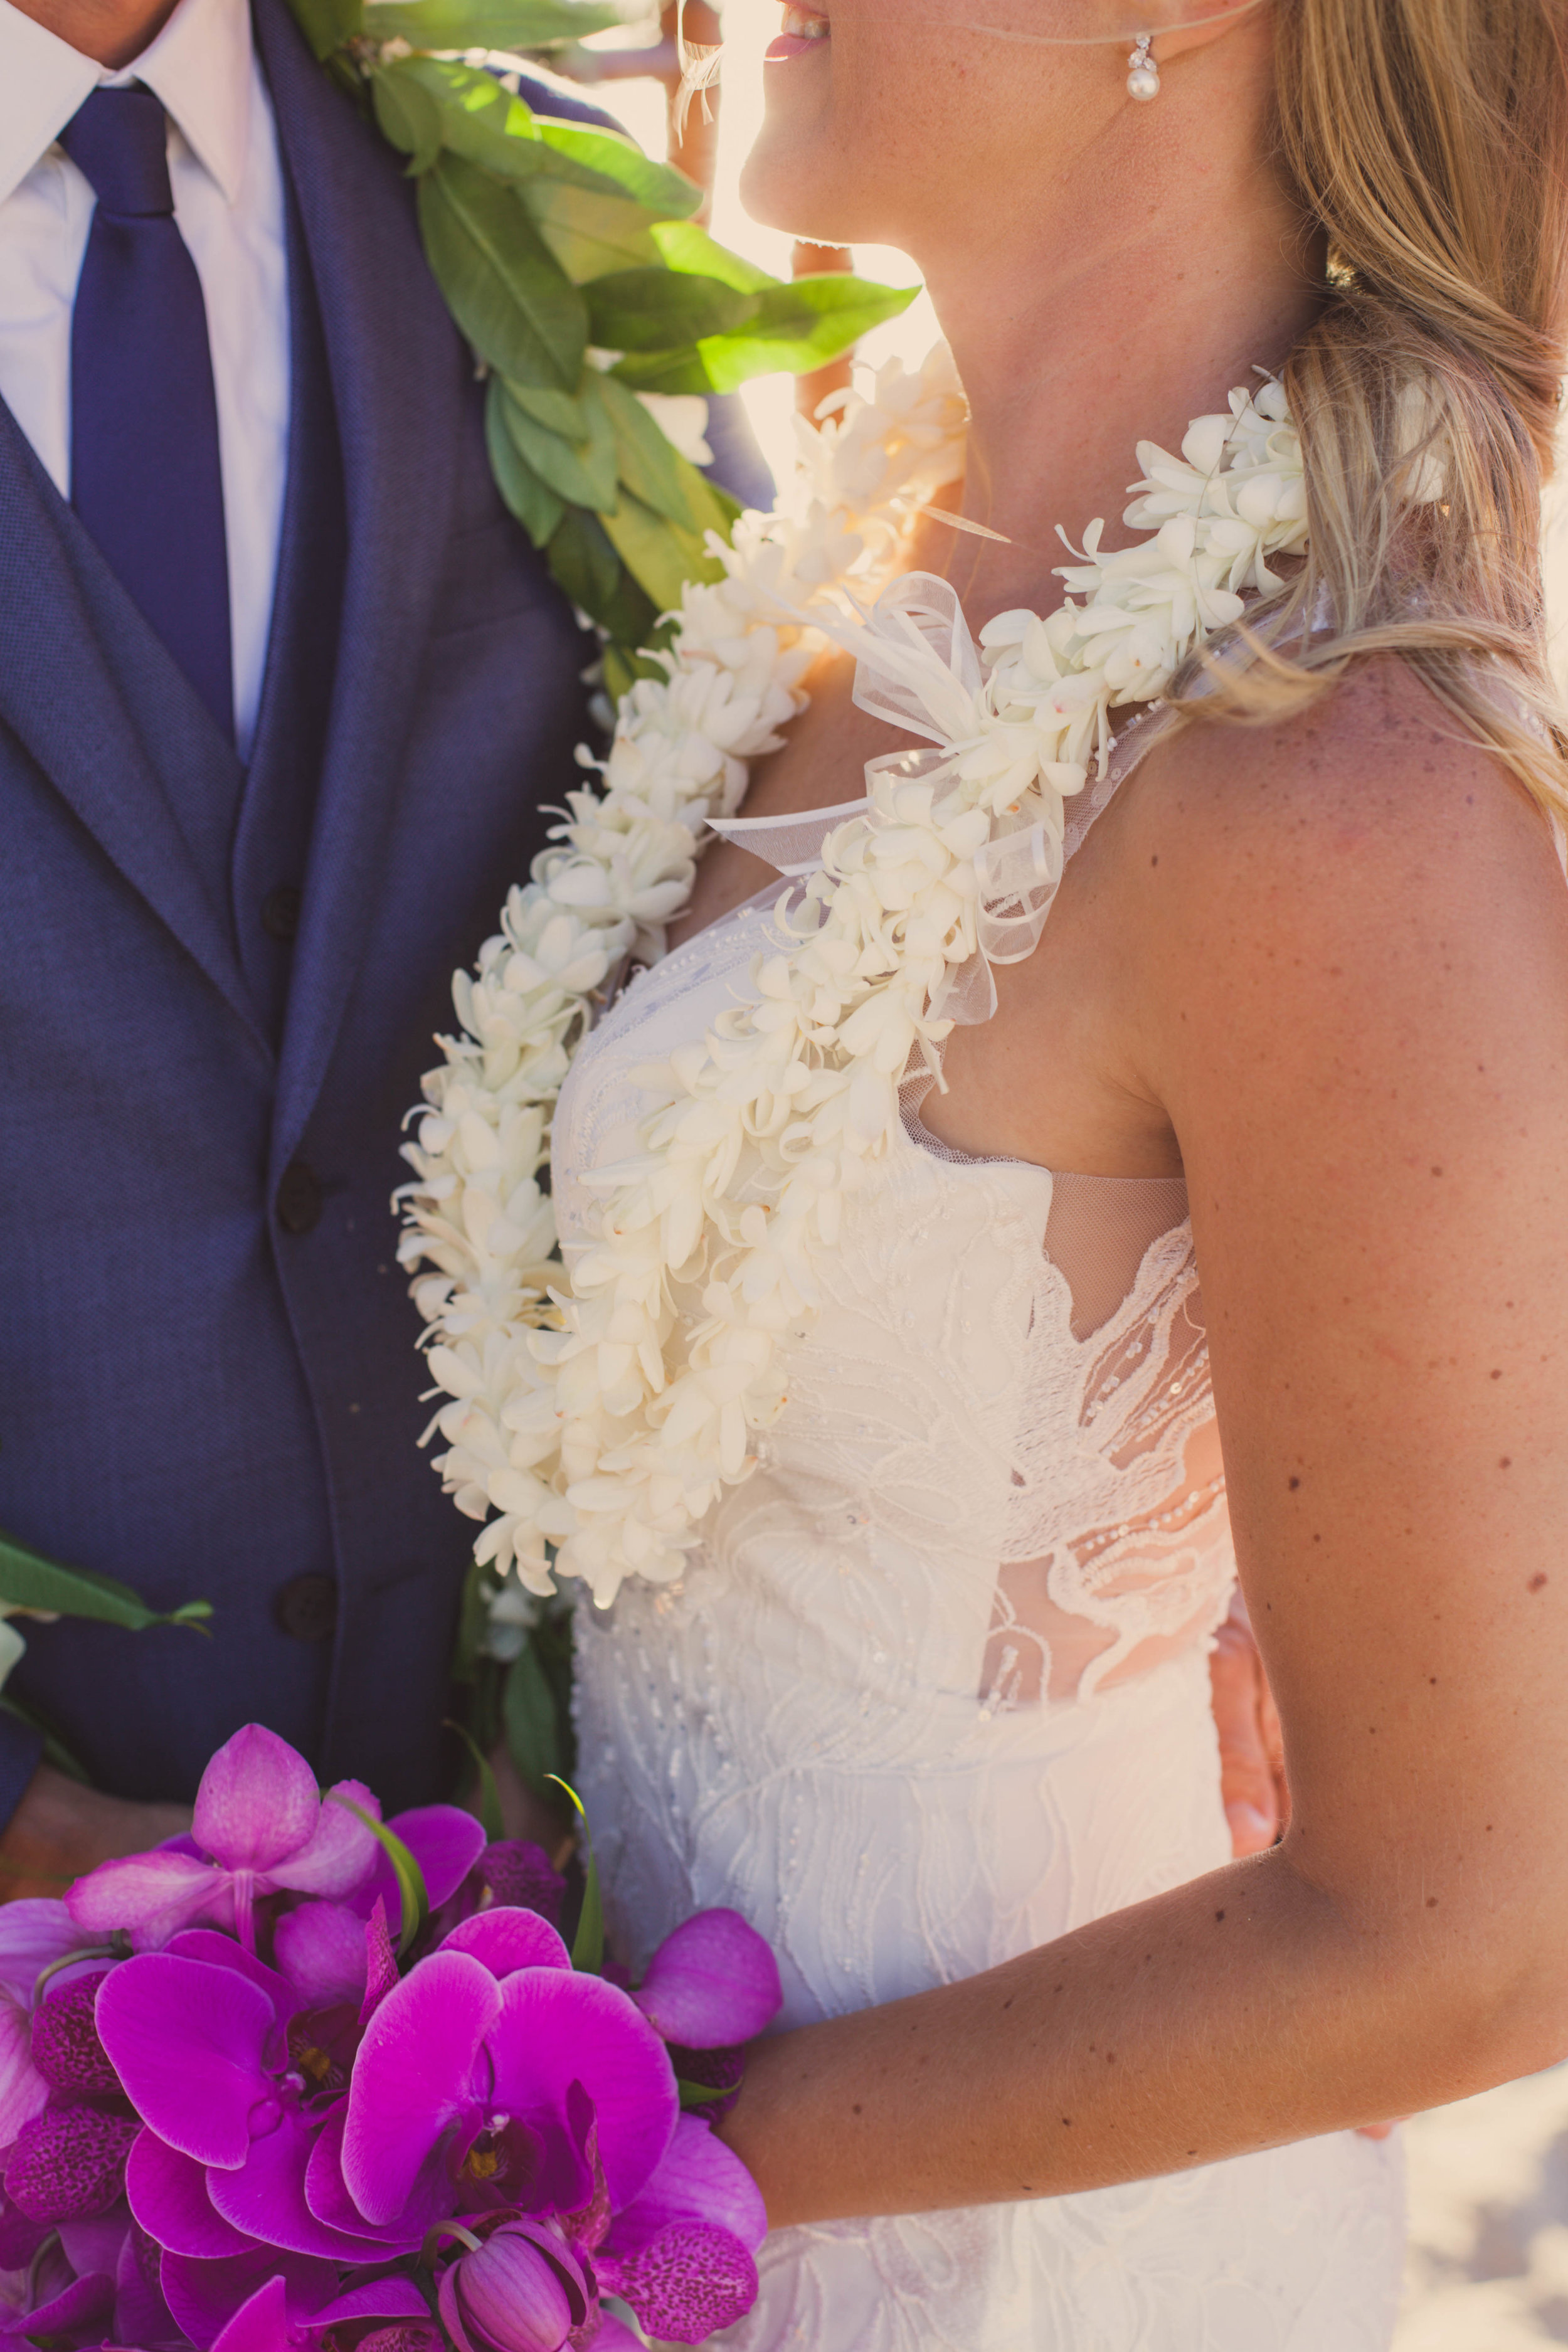 big island hawaii fairmont orchid beach wedding © kelilina photography 20170812180510-1.jpg